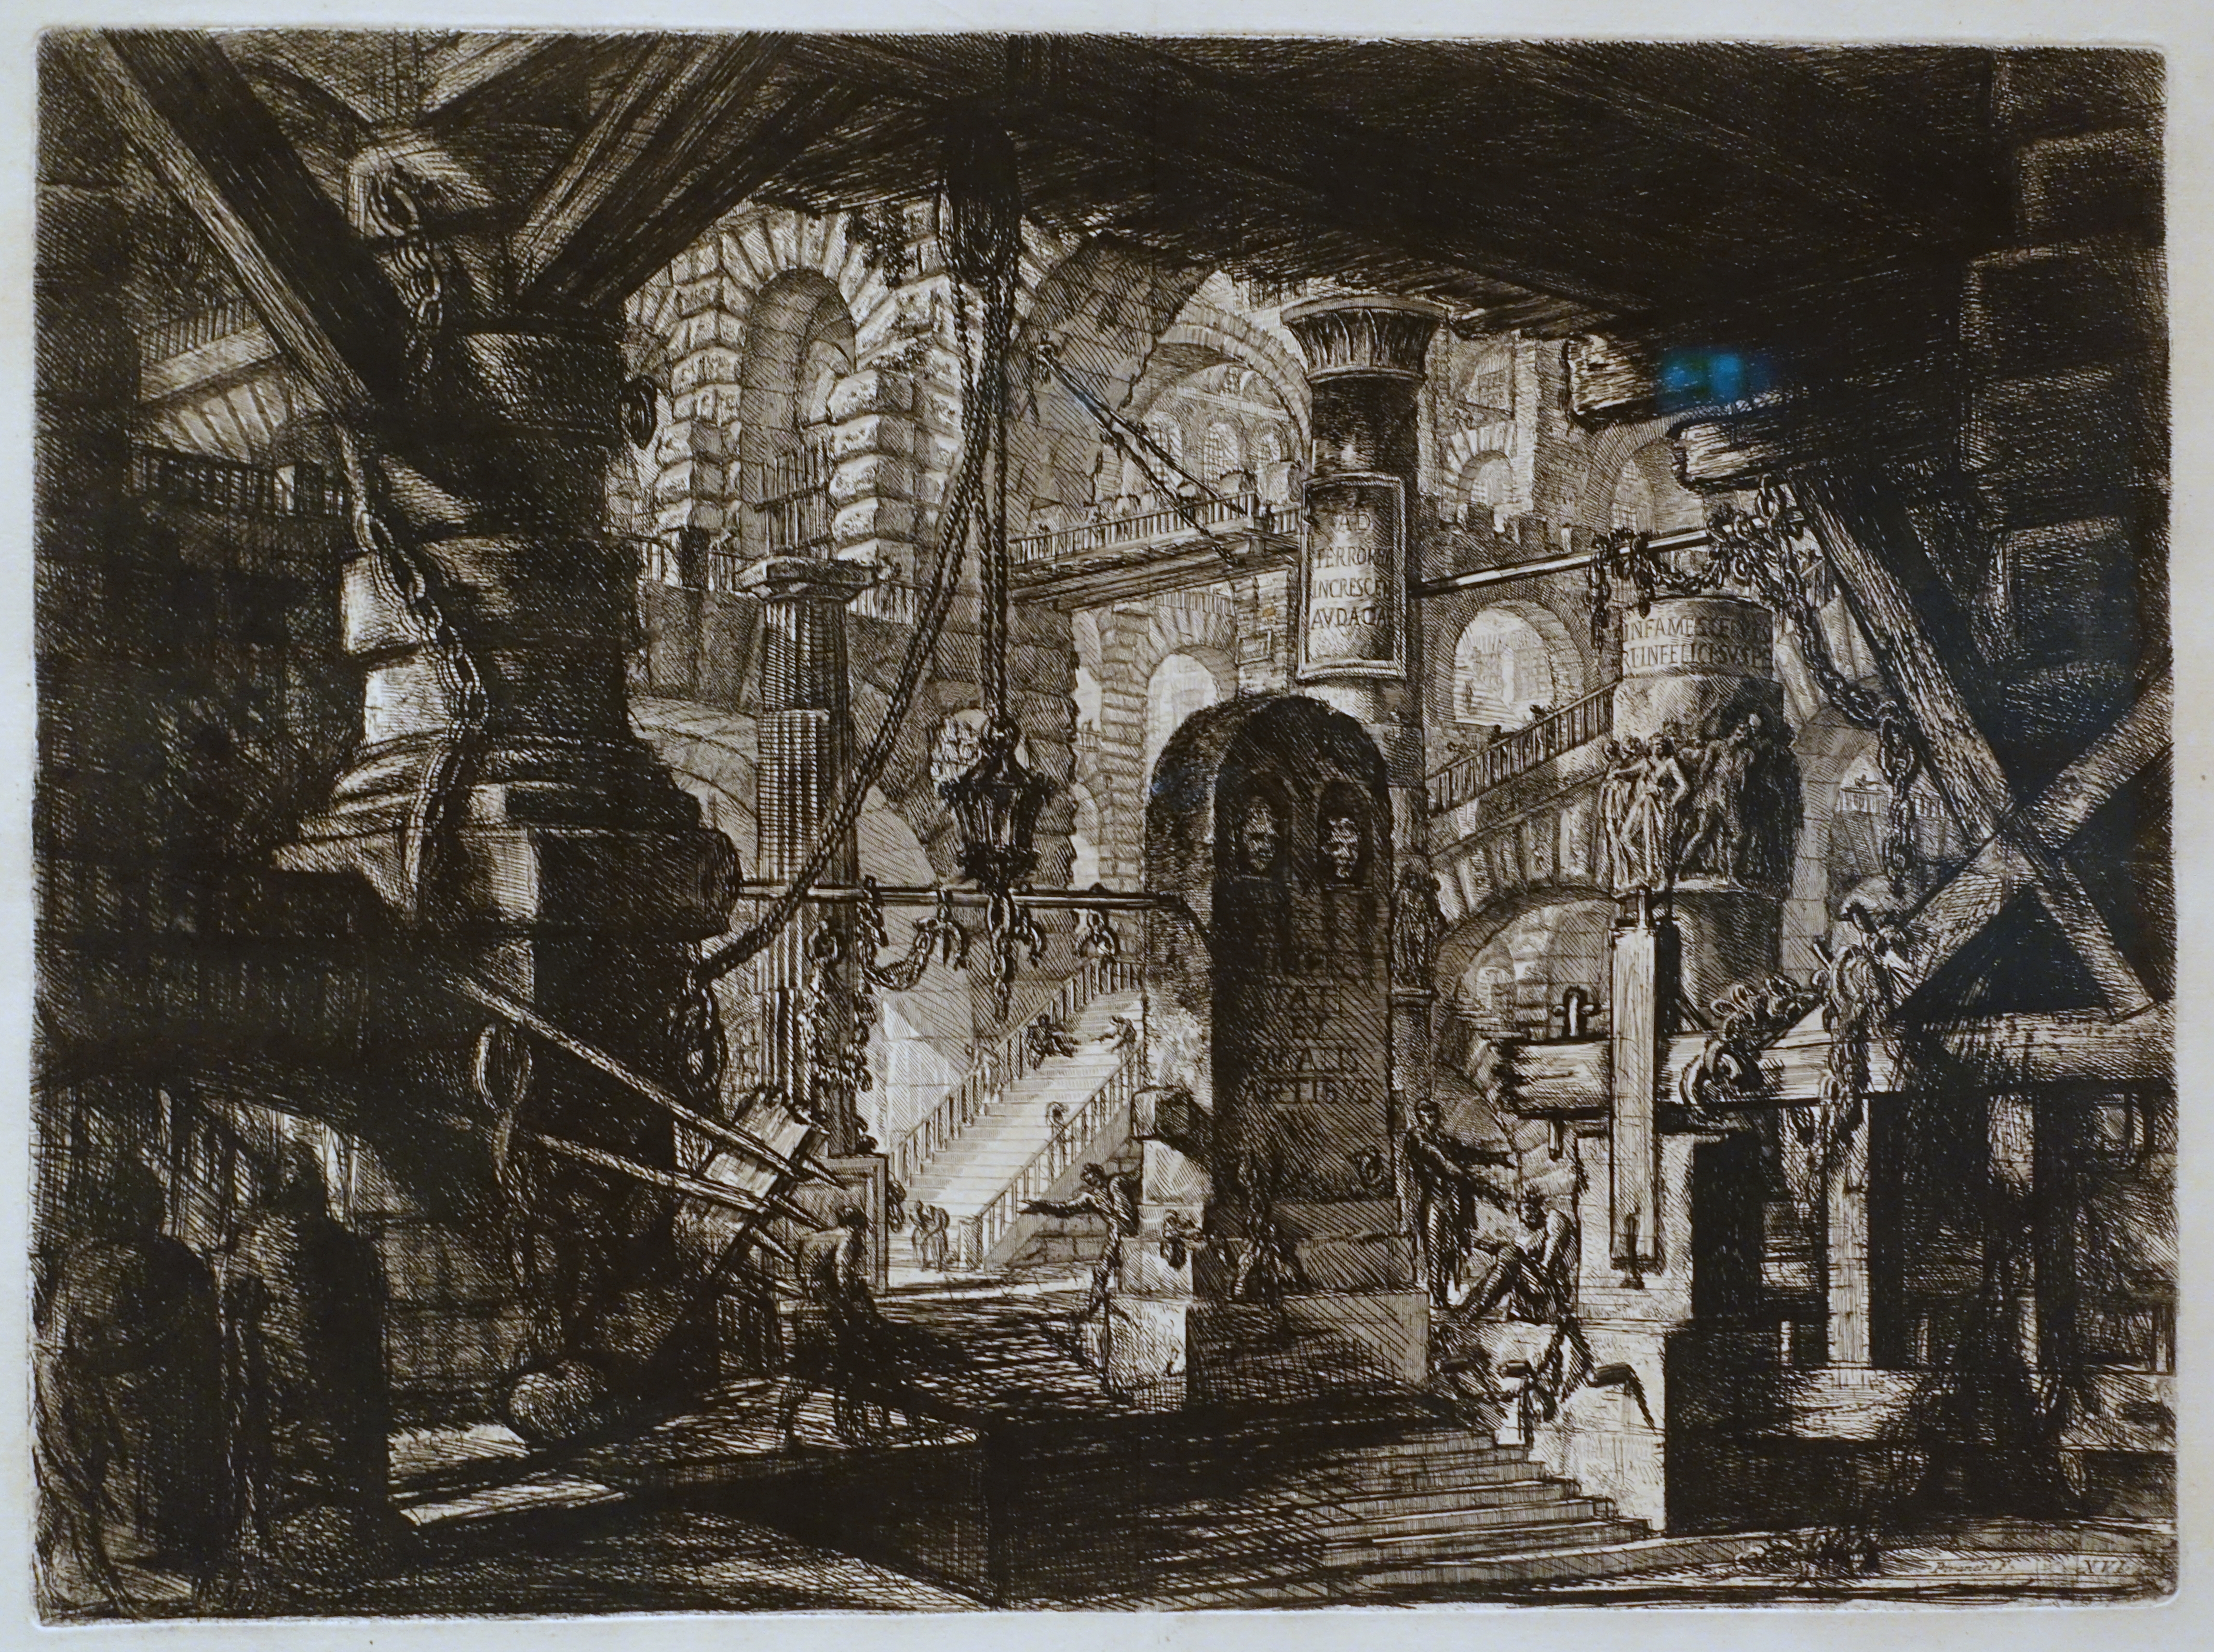 File:Giovanni Battista Piranesi - Le Carceri d'Invenzione - Second Edition  - 1761